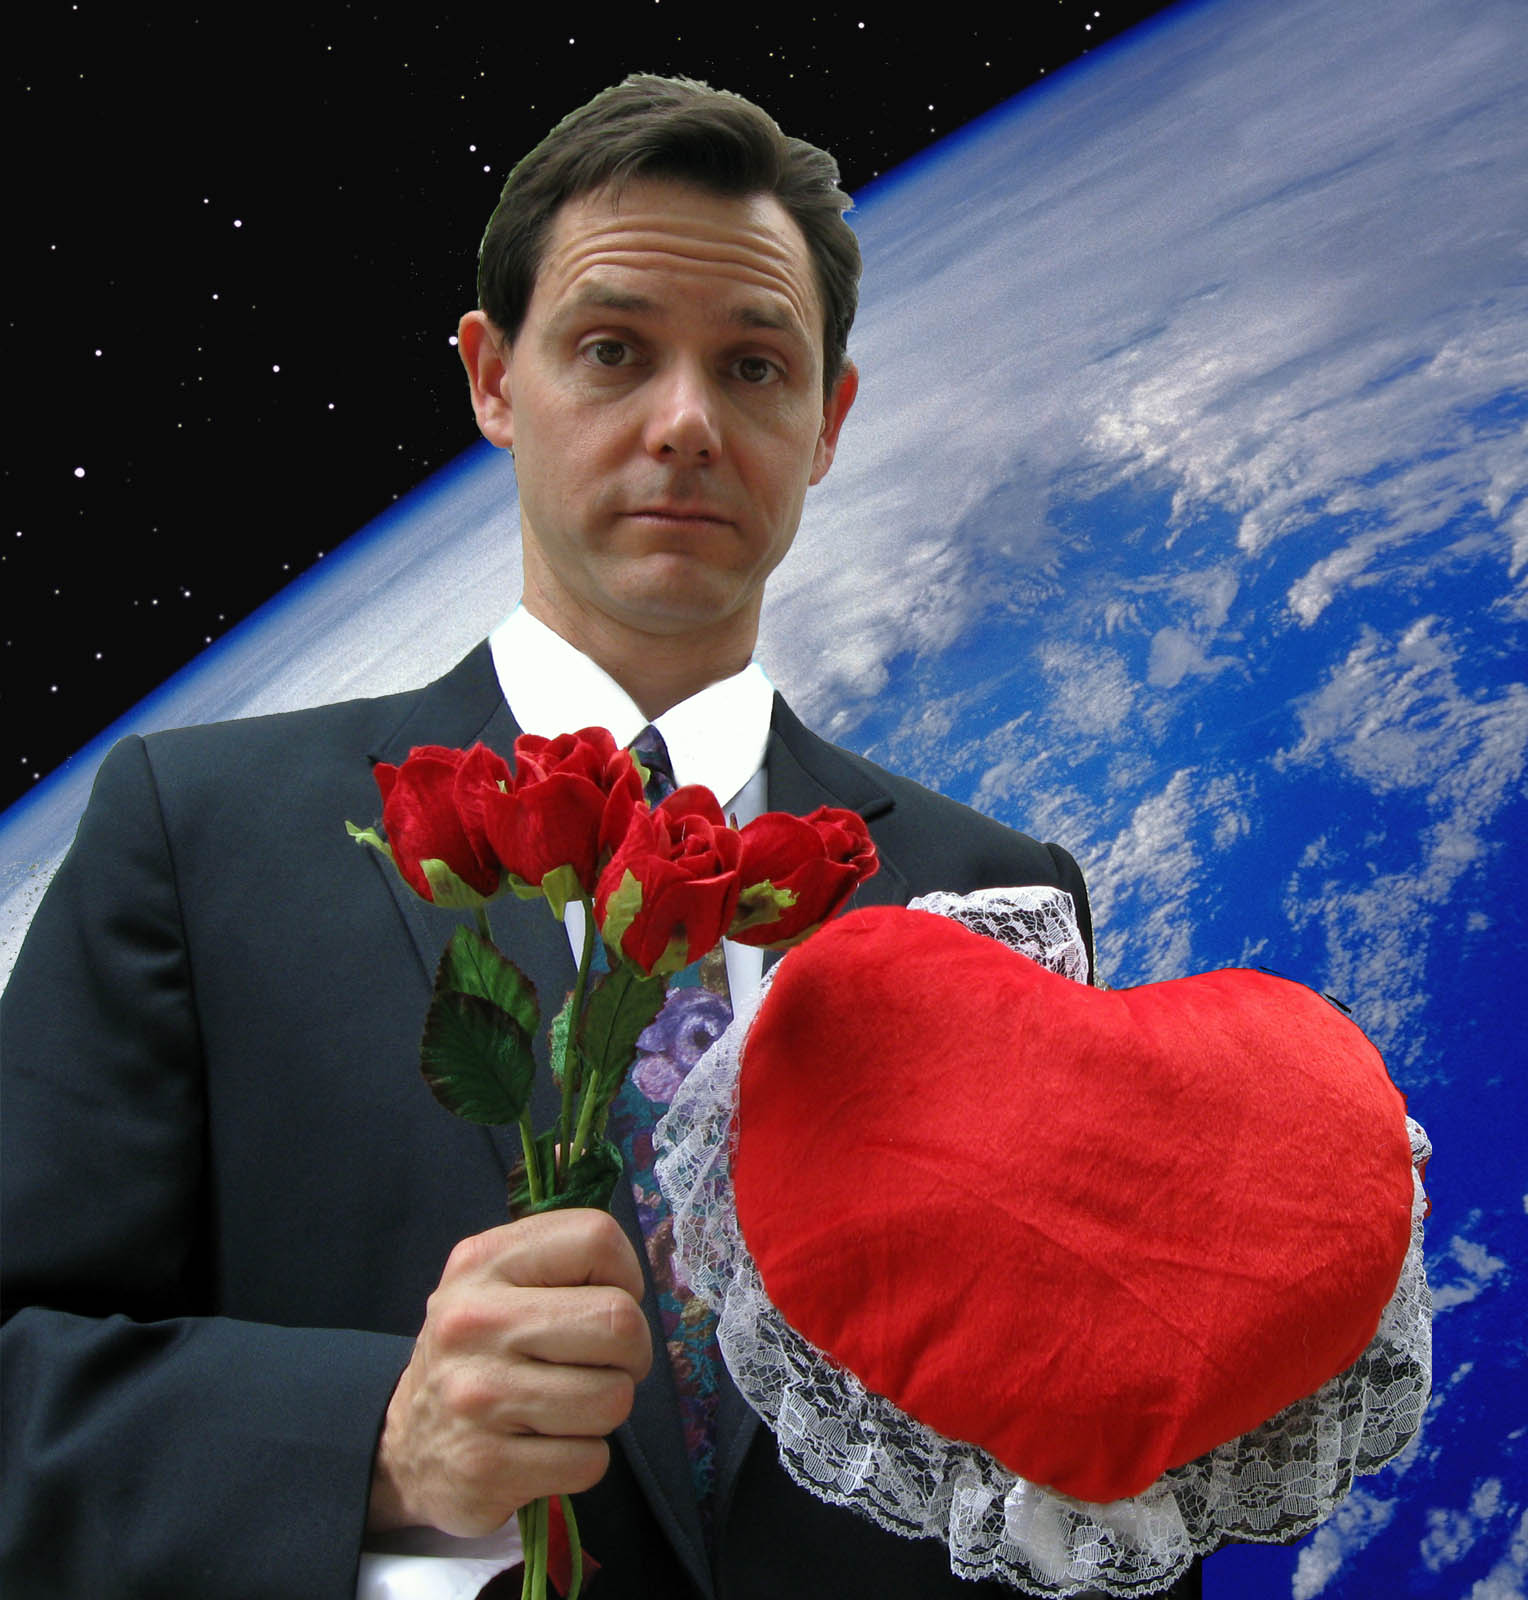 Chris Earth Valentine